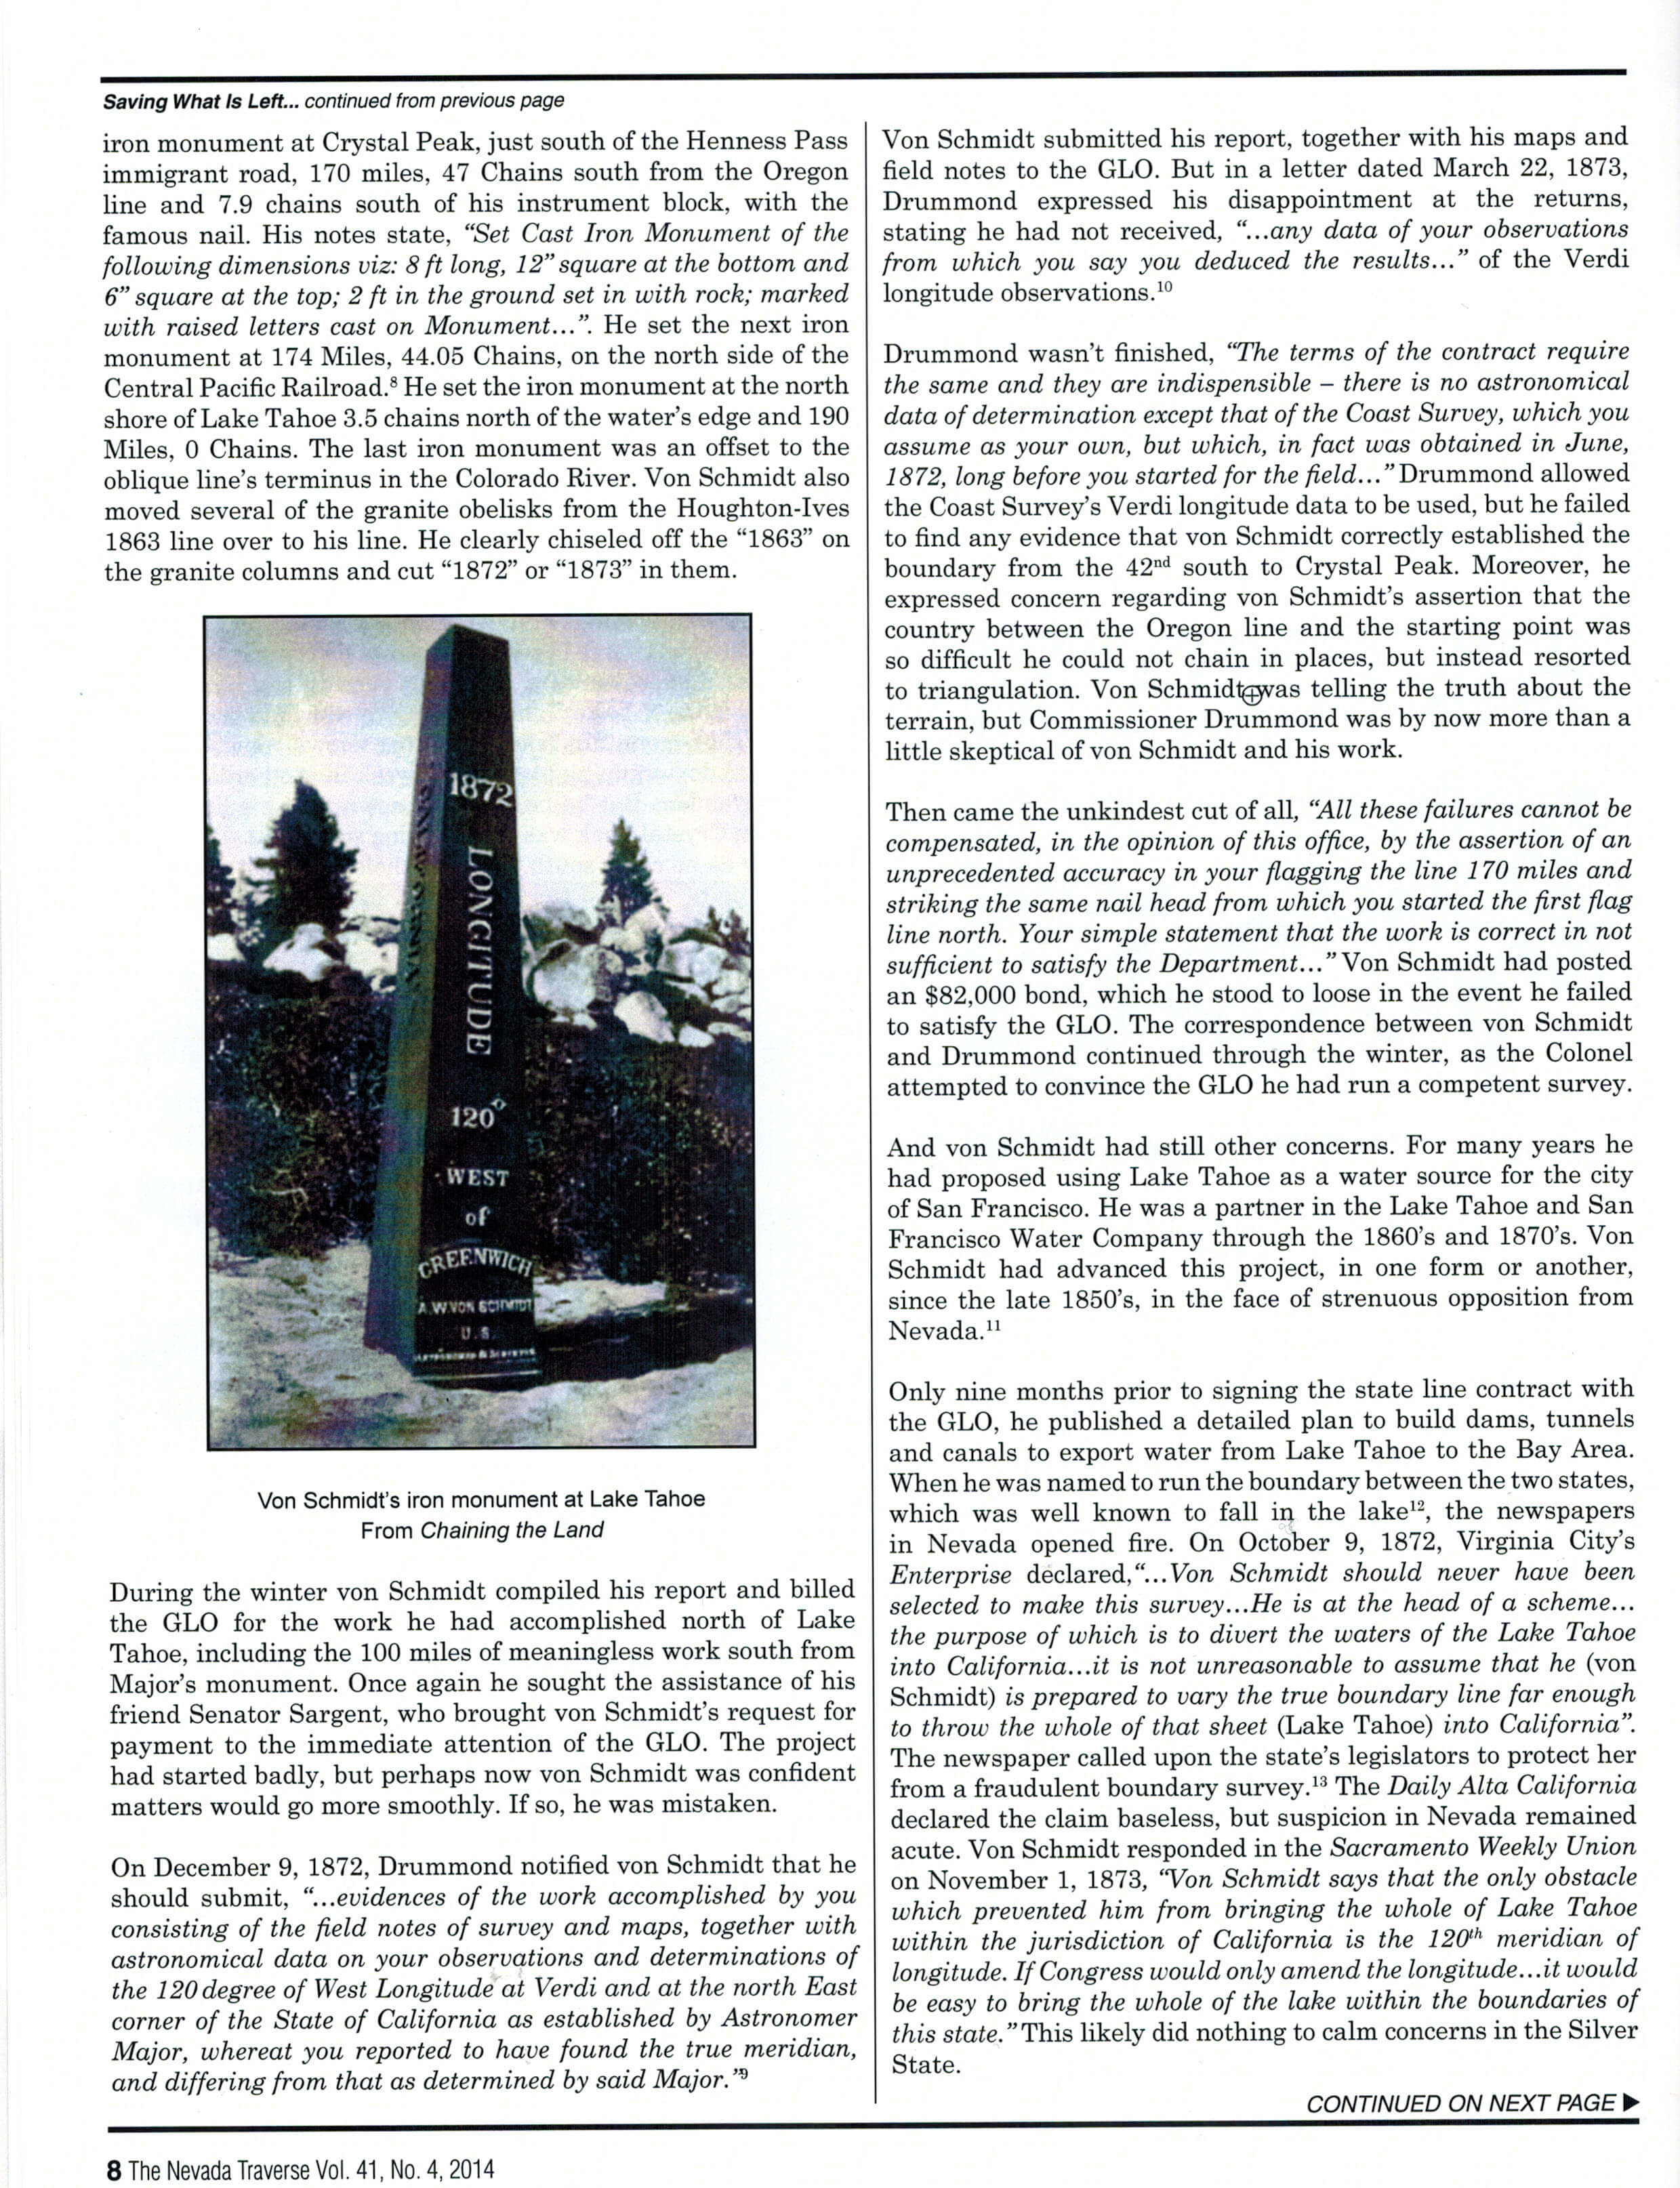 The Nevada Traverse Article_Page_06